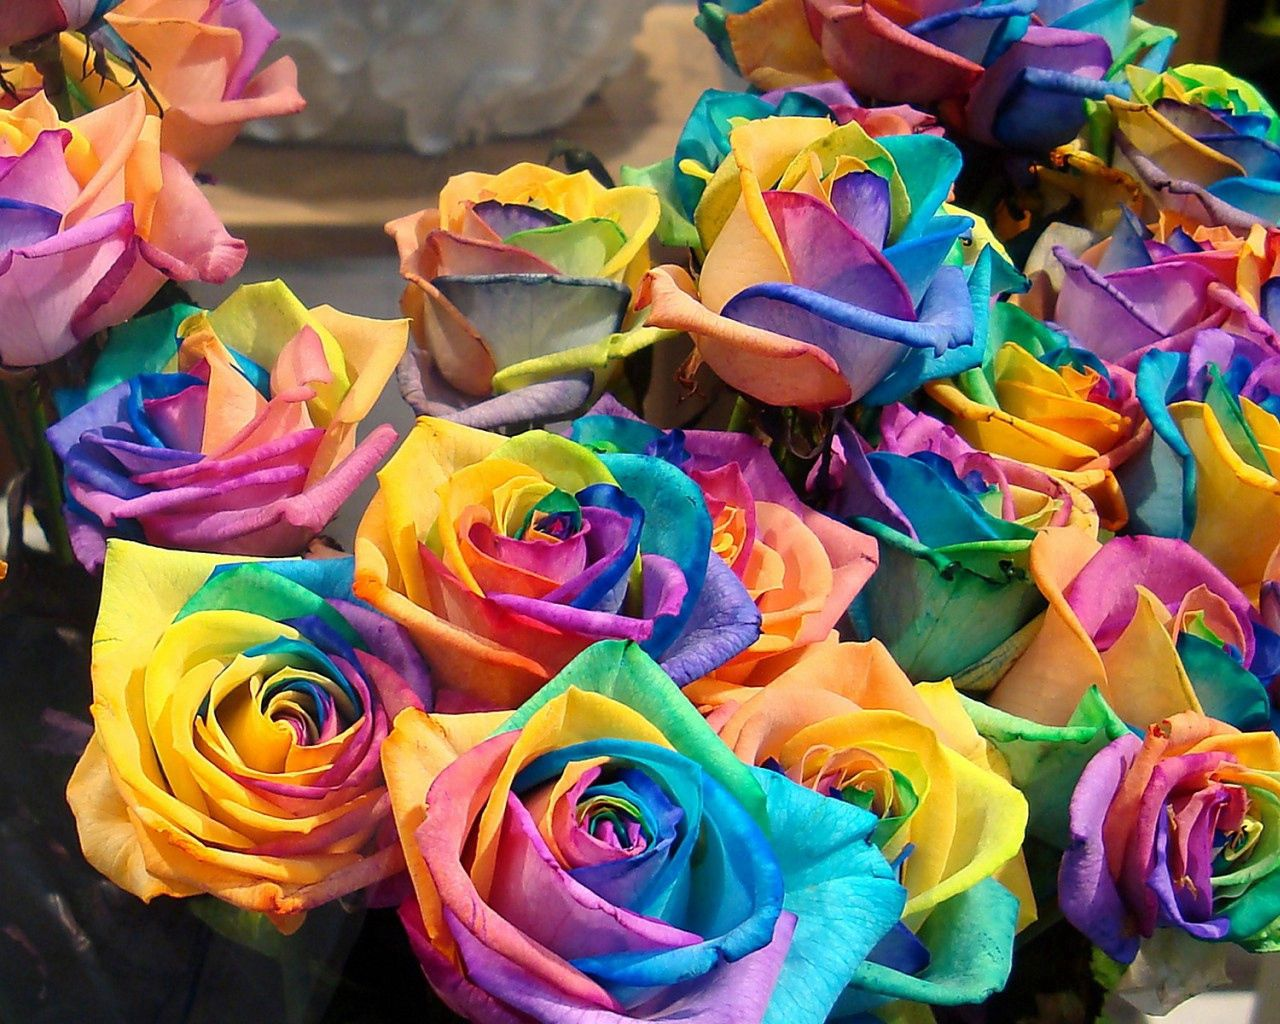 150626 download wallpaper Flowers, Roses, Bright, Multicolored, Buds screensavers and pictures for free